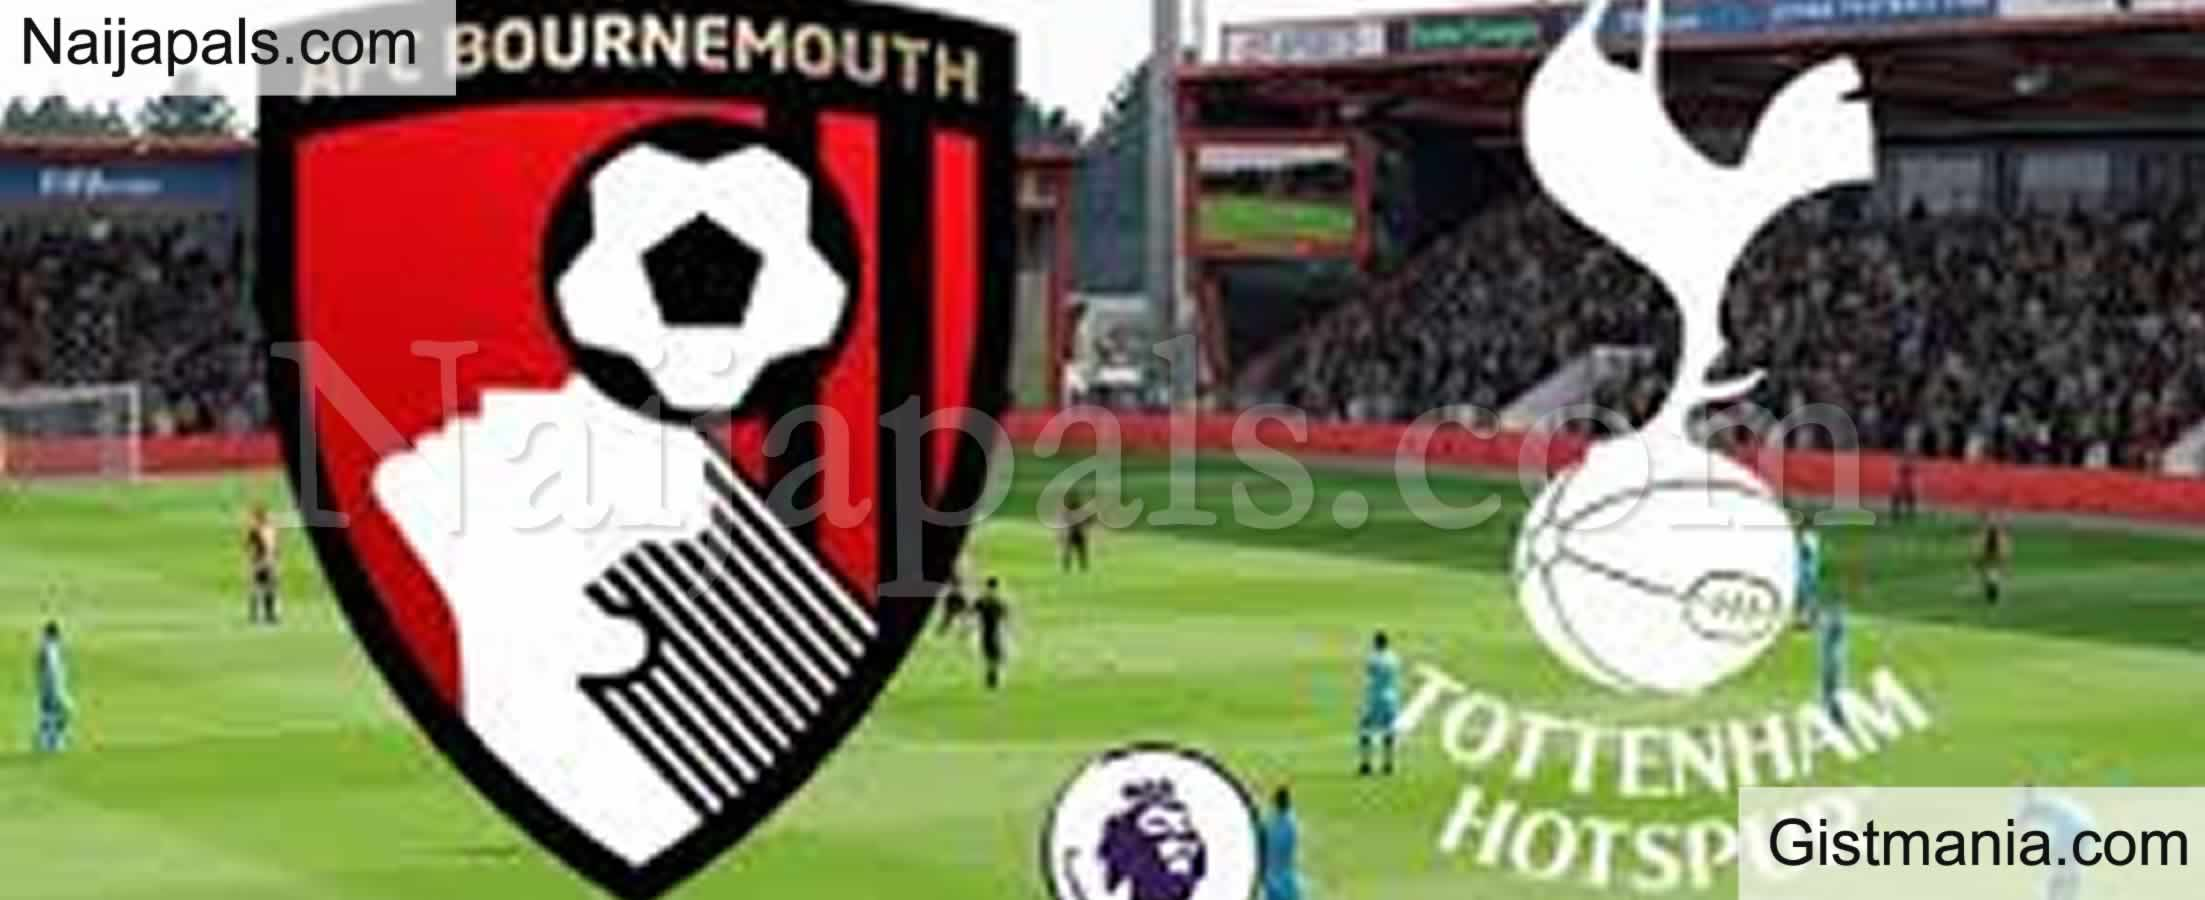 <img alt='.' class='lazyload' data-src='https://img.gistmania.com/emot/soccer.gif' /> <b>Bournemouth v Tottenham : English Premier League Match, Team News, Goal Scorers and Stats</b>